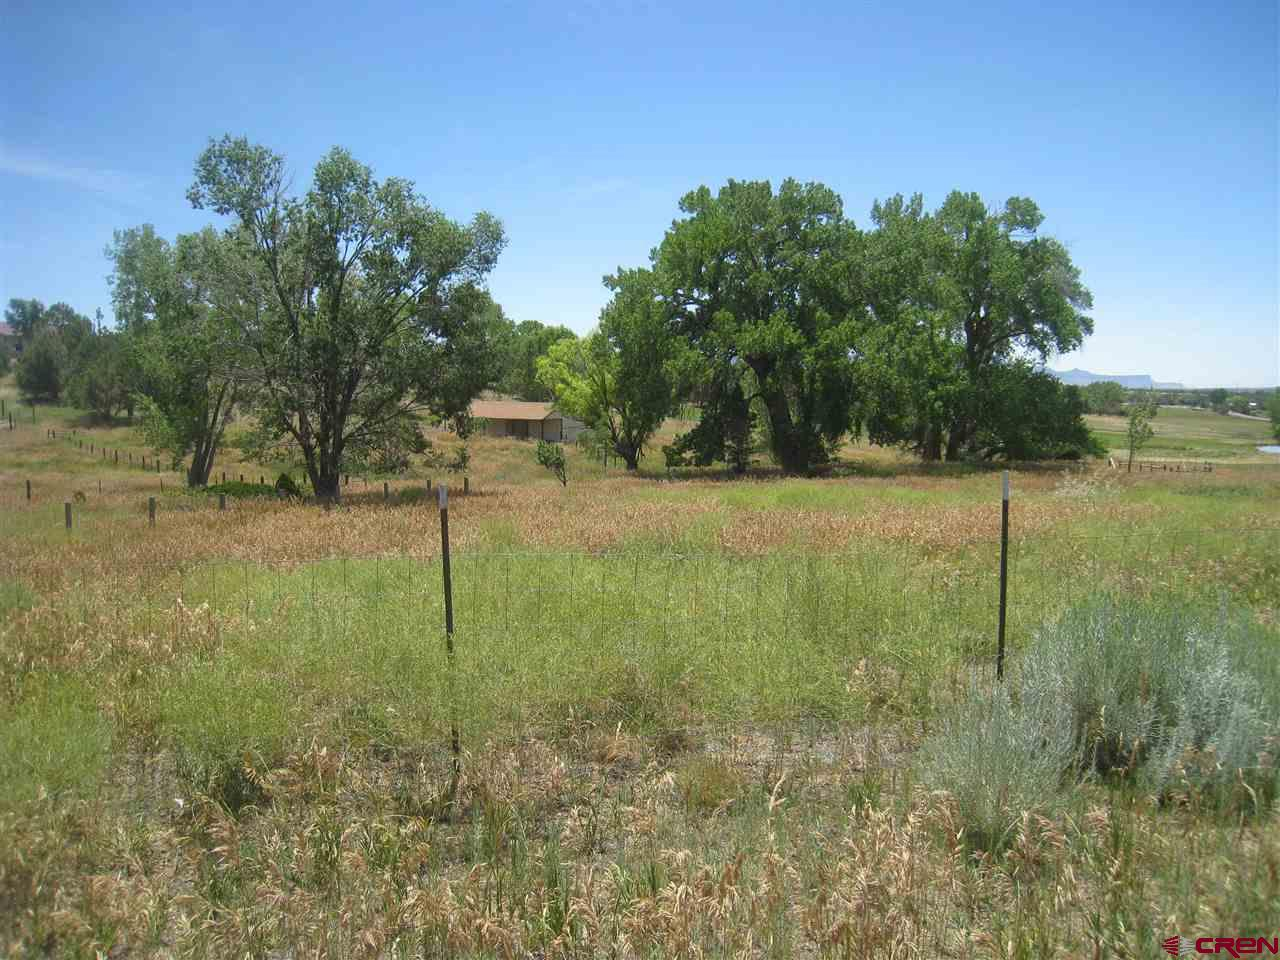 Rare opportunity in a very desired location north of Cortez.  This 4+ acre lot has it all, mature cottonwood trees, pressurized irrigation water, shared pond, partial fencing, barn (900 Sq. Ft) paved county road, all utilities installed including the water tap, septic system, and electric.  VIEWS of the mountains & mesas!  Build you dream home on this beautiful parcel in heaven. The irrigation water is held in the Green Acres Water Users Association.  No manufactured homes.